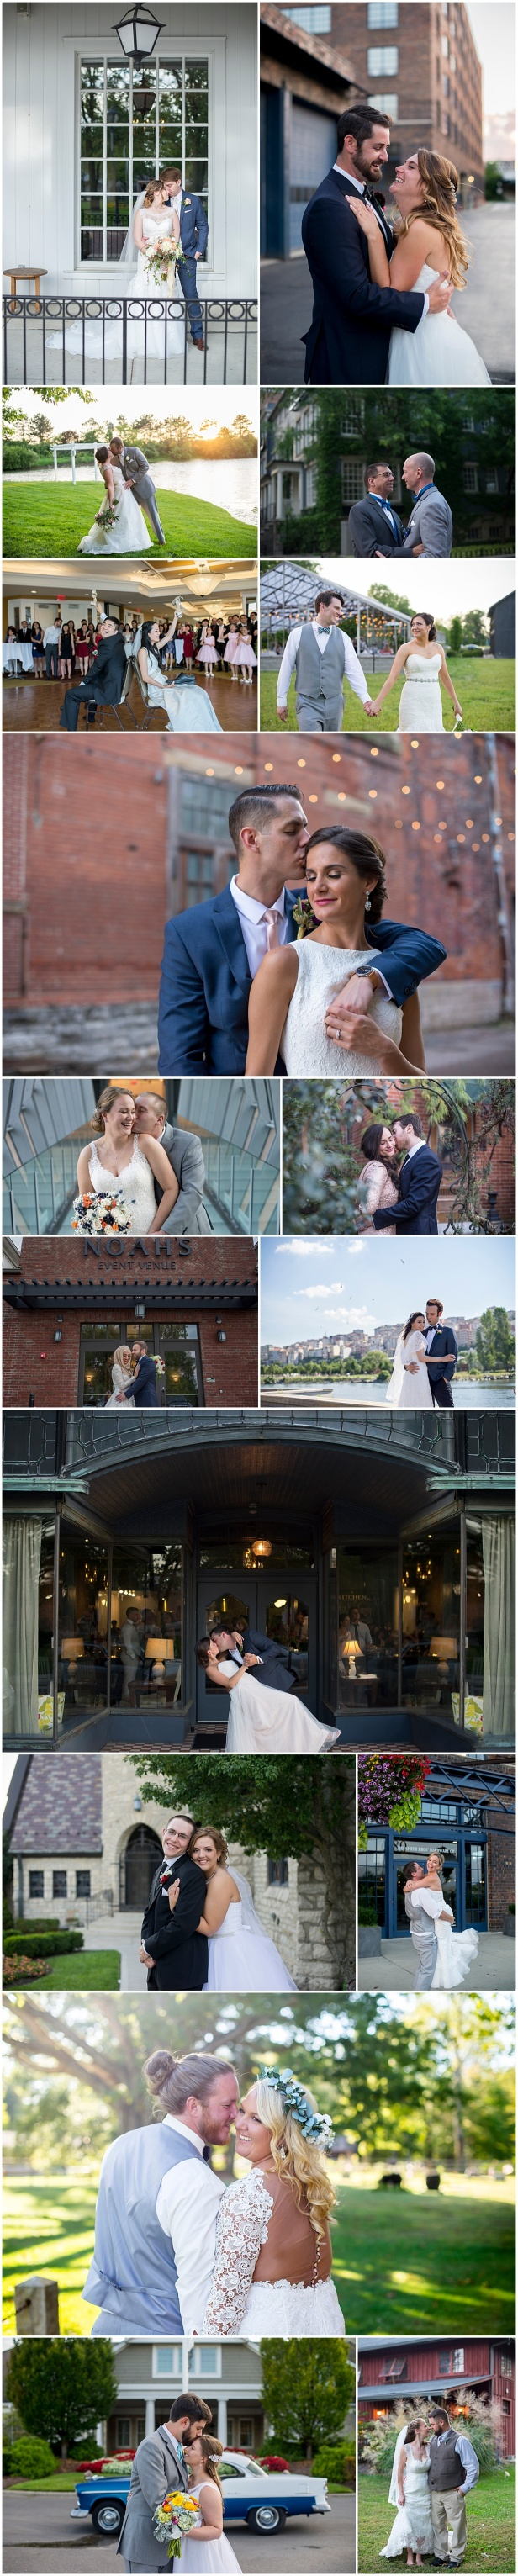 Wedding Photographers Columbus Ohio